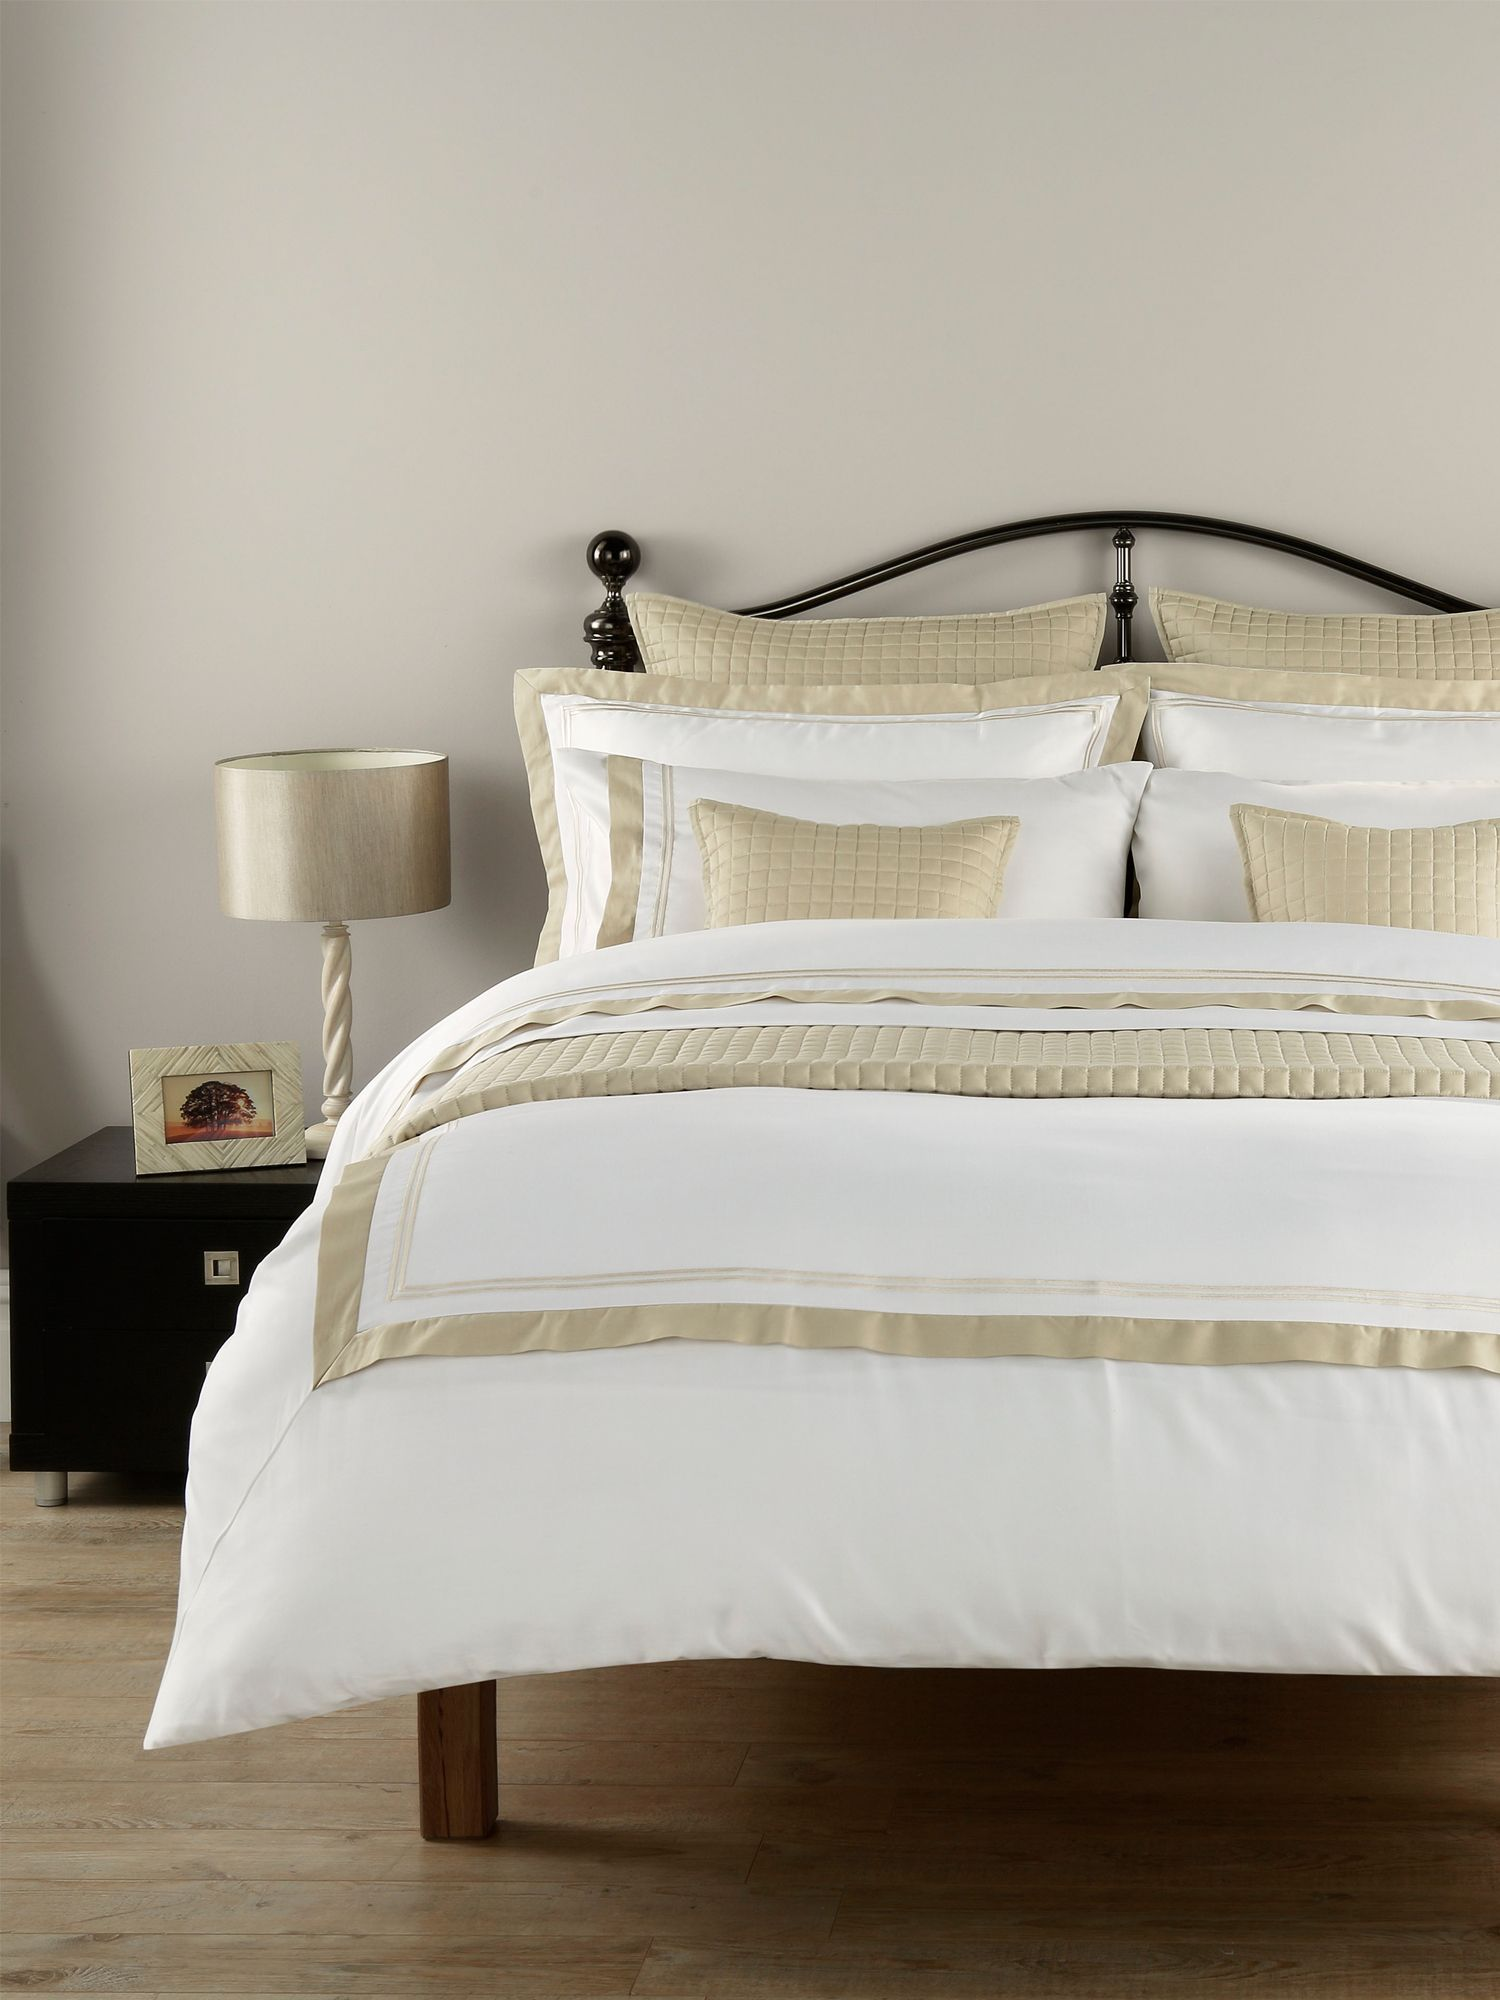 Exceptional House Of Fraser Bed Linen Sets Part - 9: Bed Linen Sets At House Of Fraser